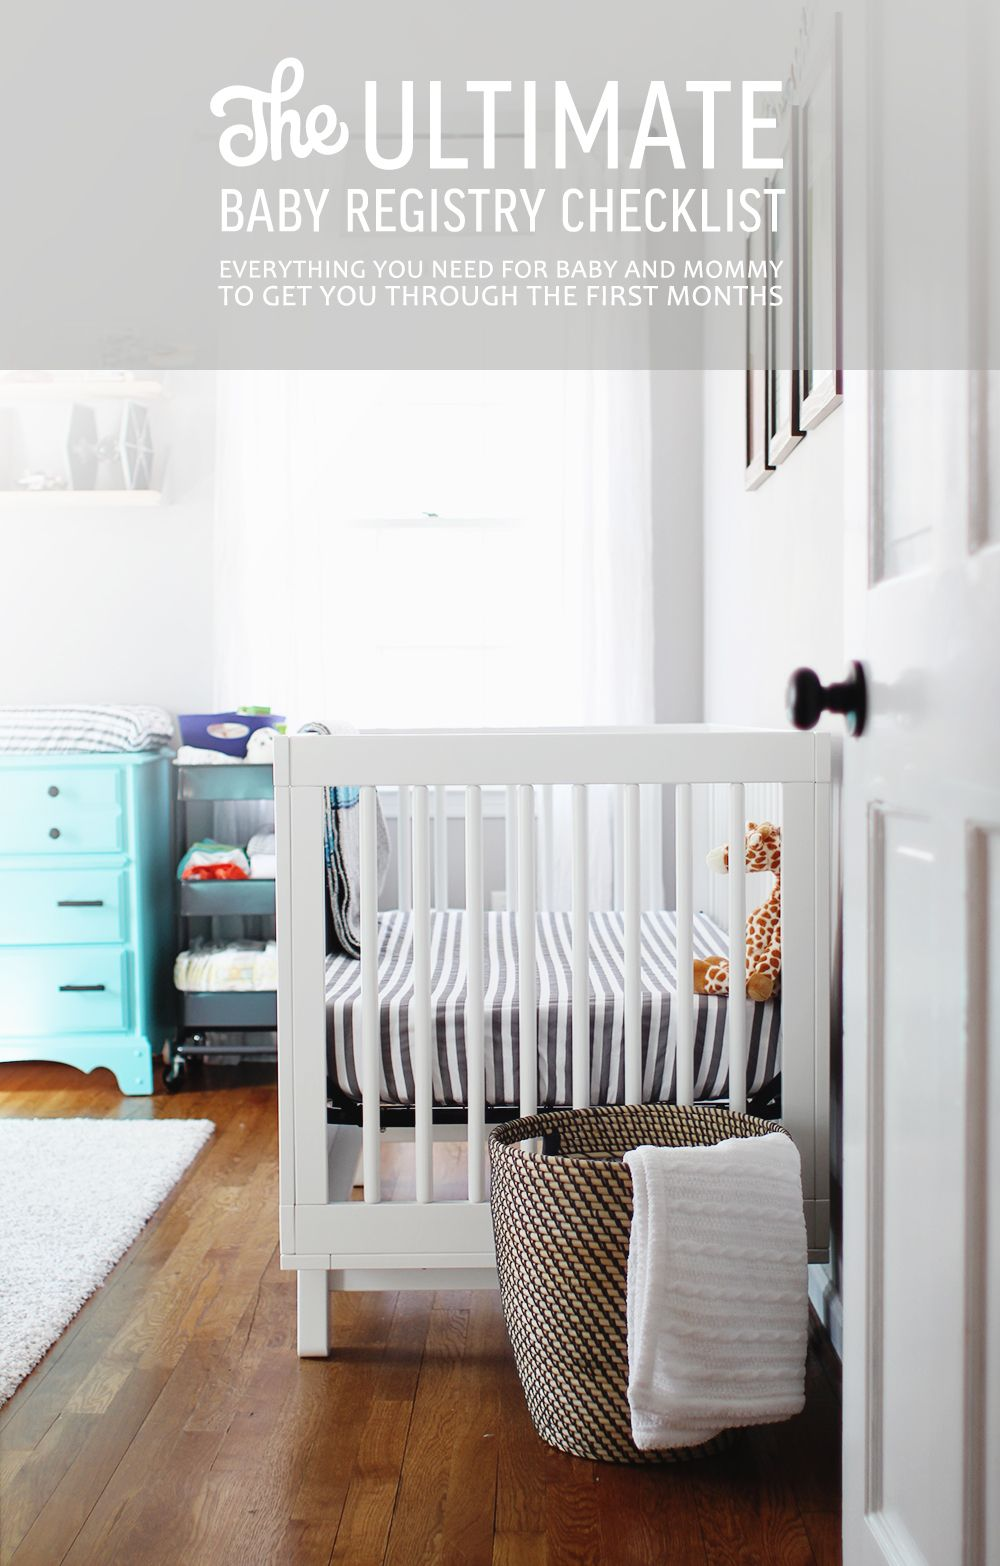 The Ultimate Baby Registry Checklist For Your New Little